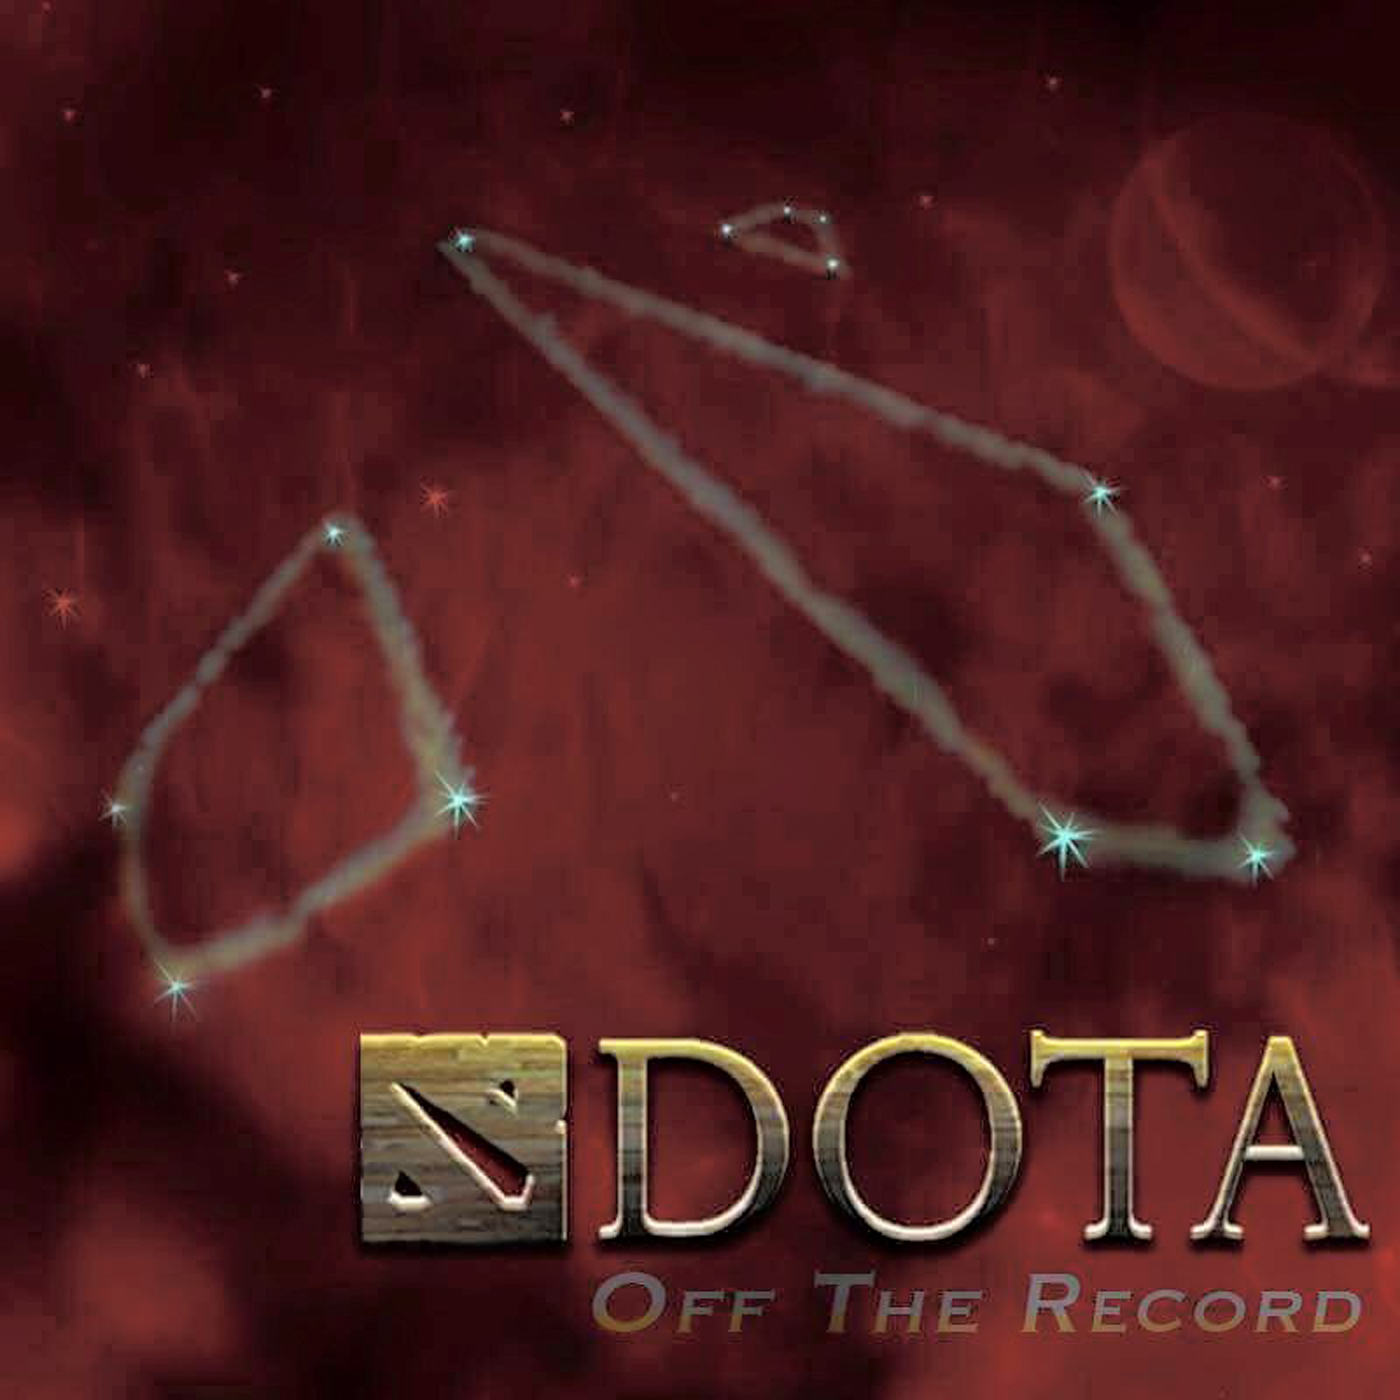 DOTA Off the Record - A DOTA Podcast